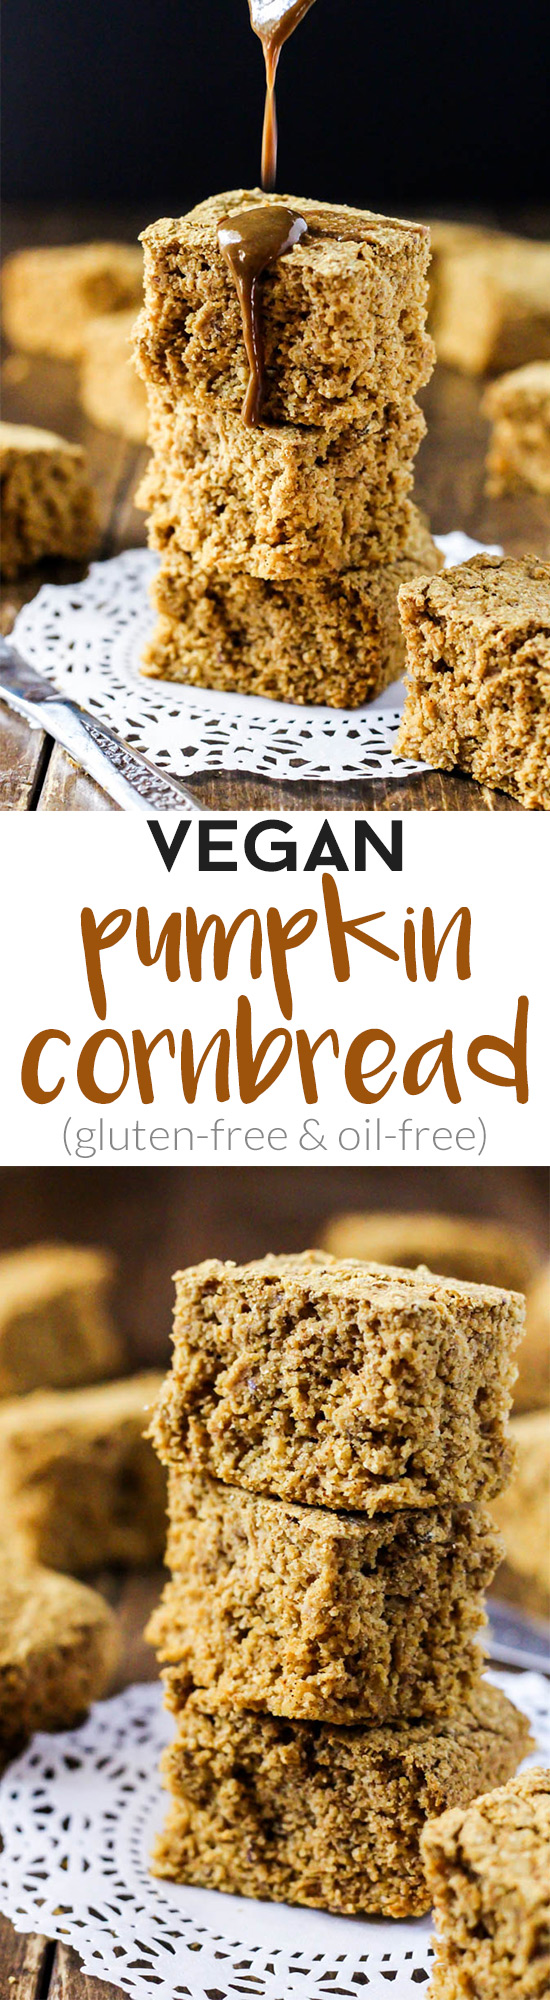 This delicious, fluffy Vegan Pumpkin Cornbread is your new favorite side dish for a holiday dinner or weeknight meal! Gluten-free & oil-free.